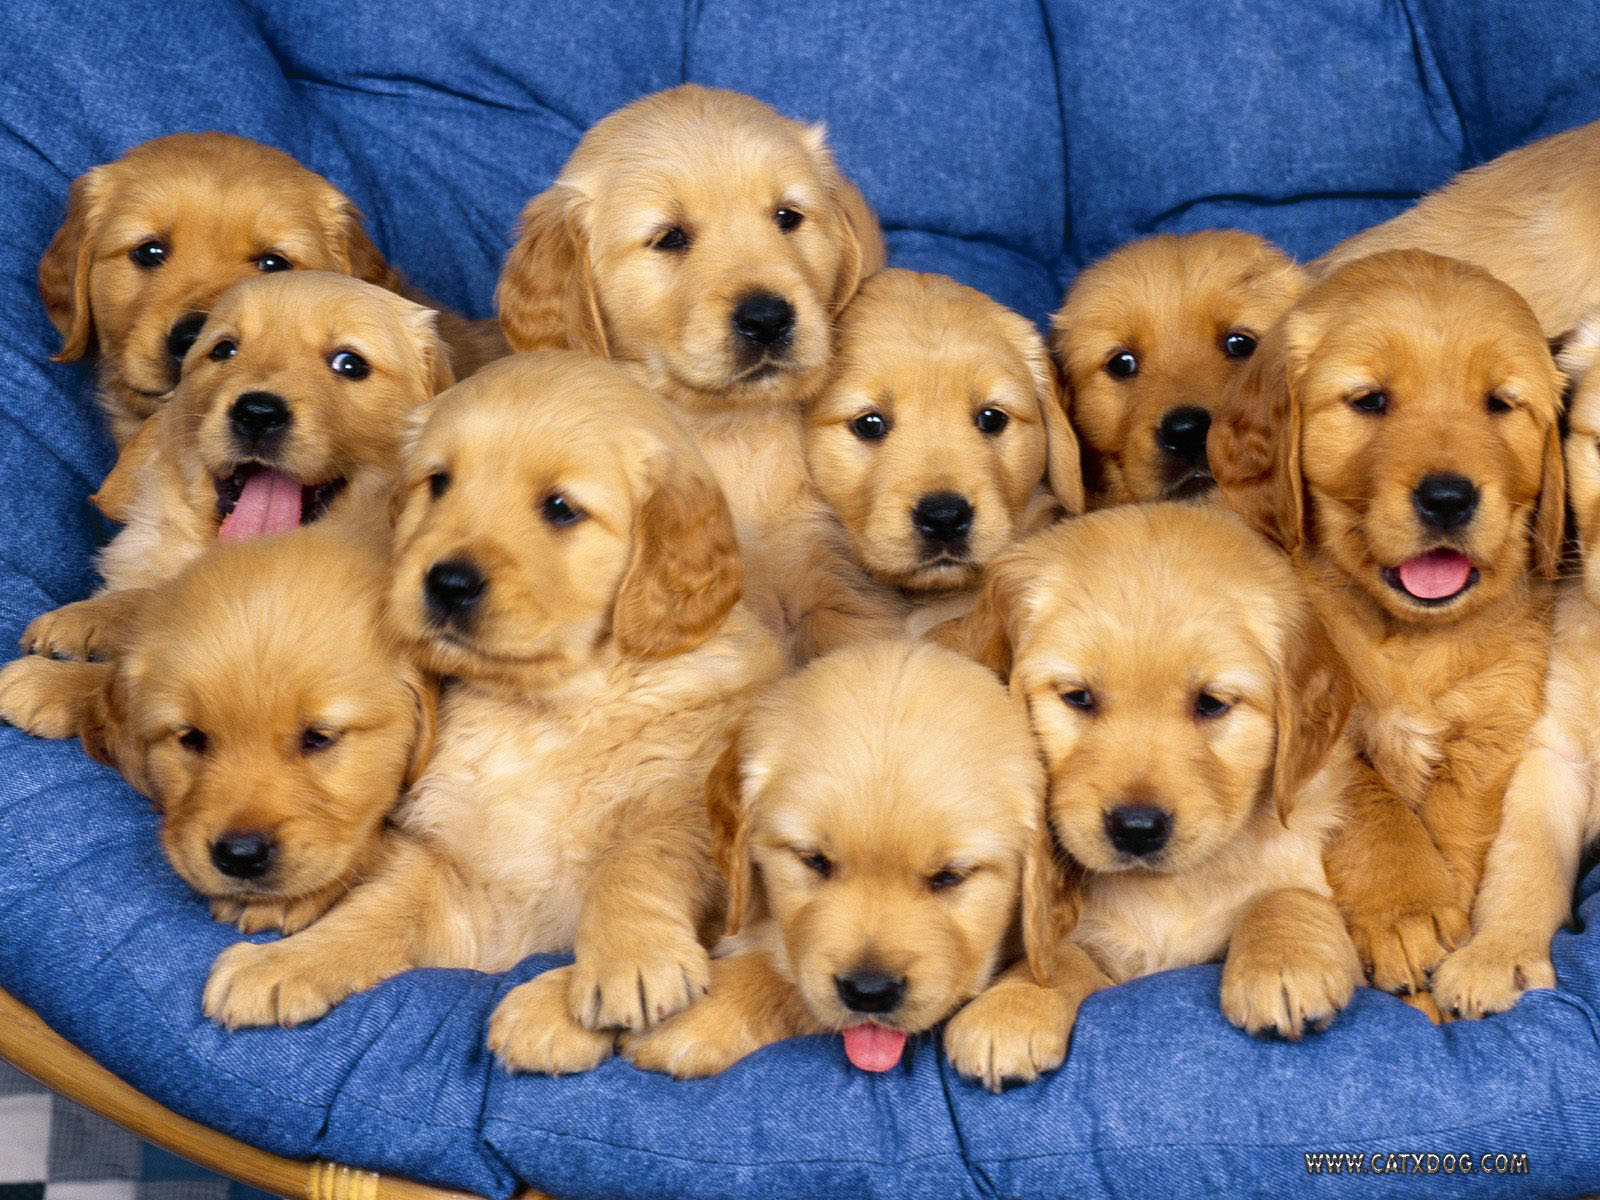 moreha tekor akhe Really Cute Puppies And Dogs